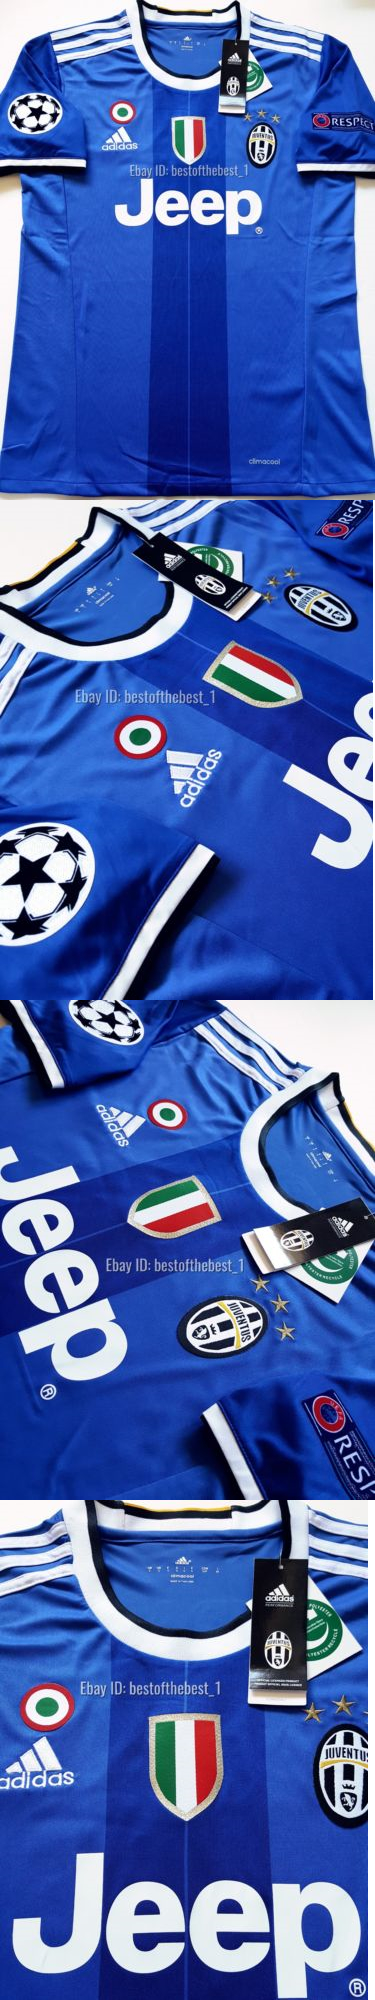 ... NWT Soccer-International Clubs 2887 2016 2017 Juventus Champions League  Paulo Dybala Away Jersey Blue . 491efe50a